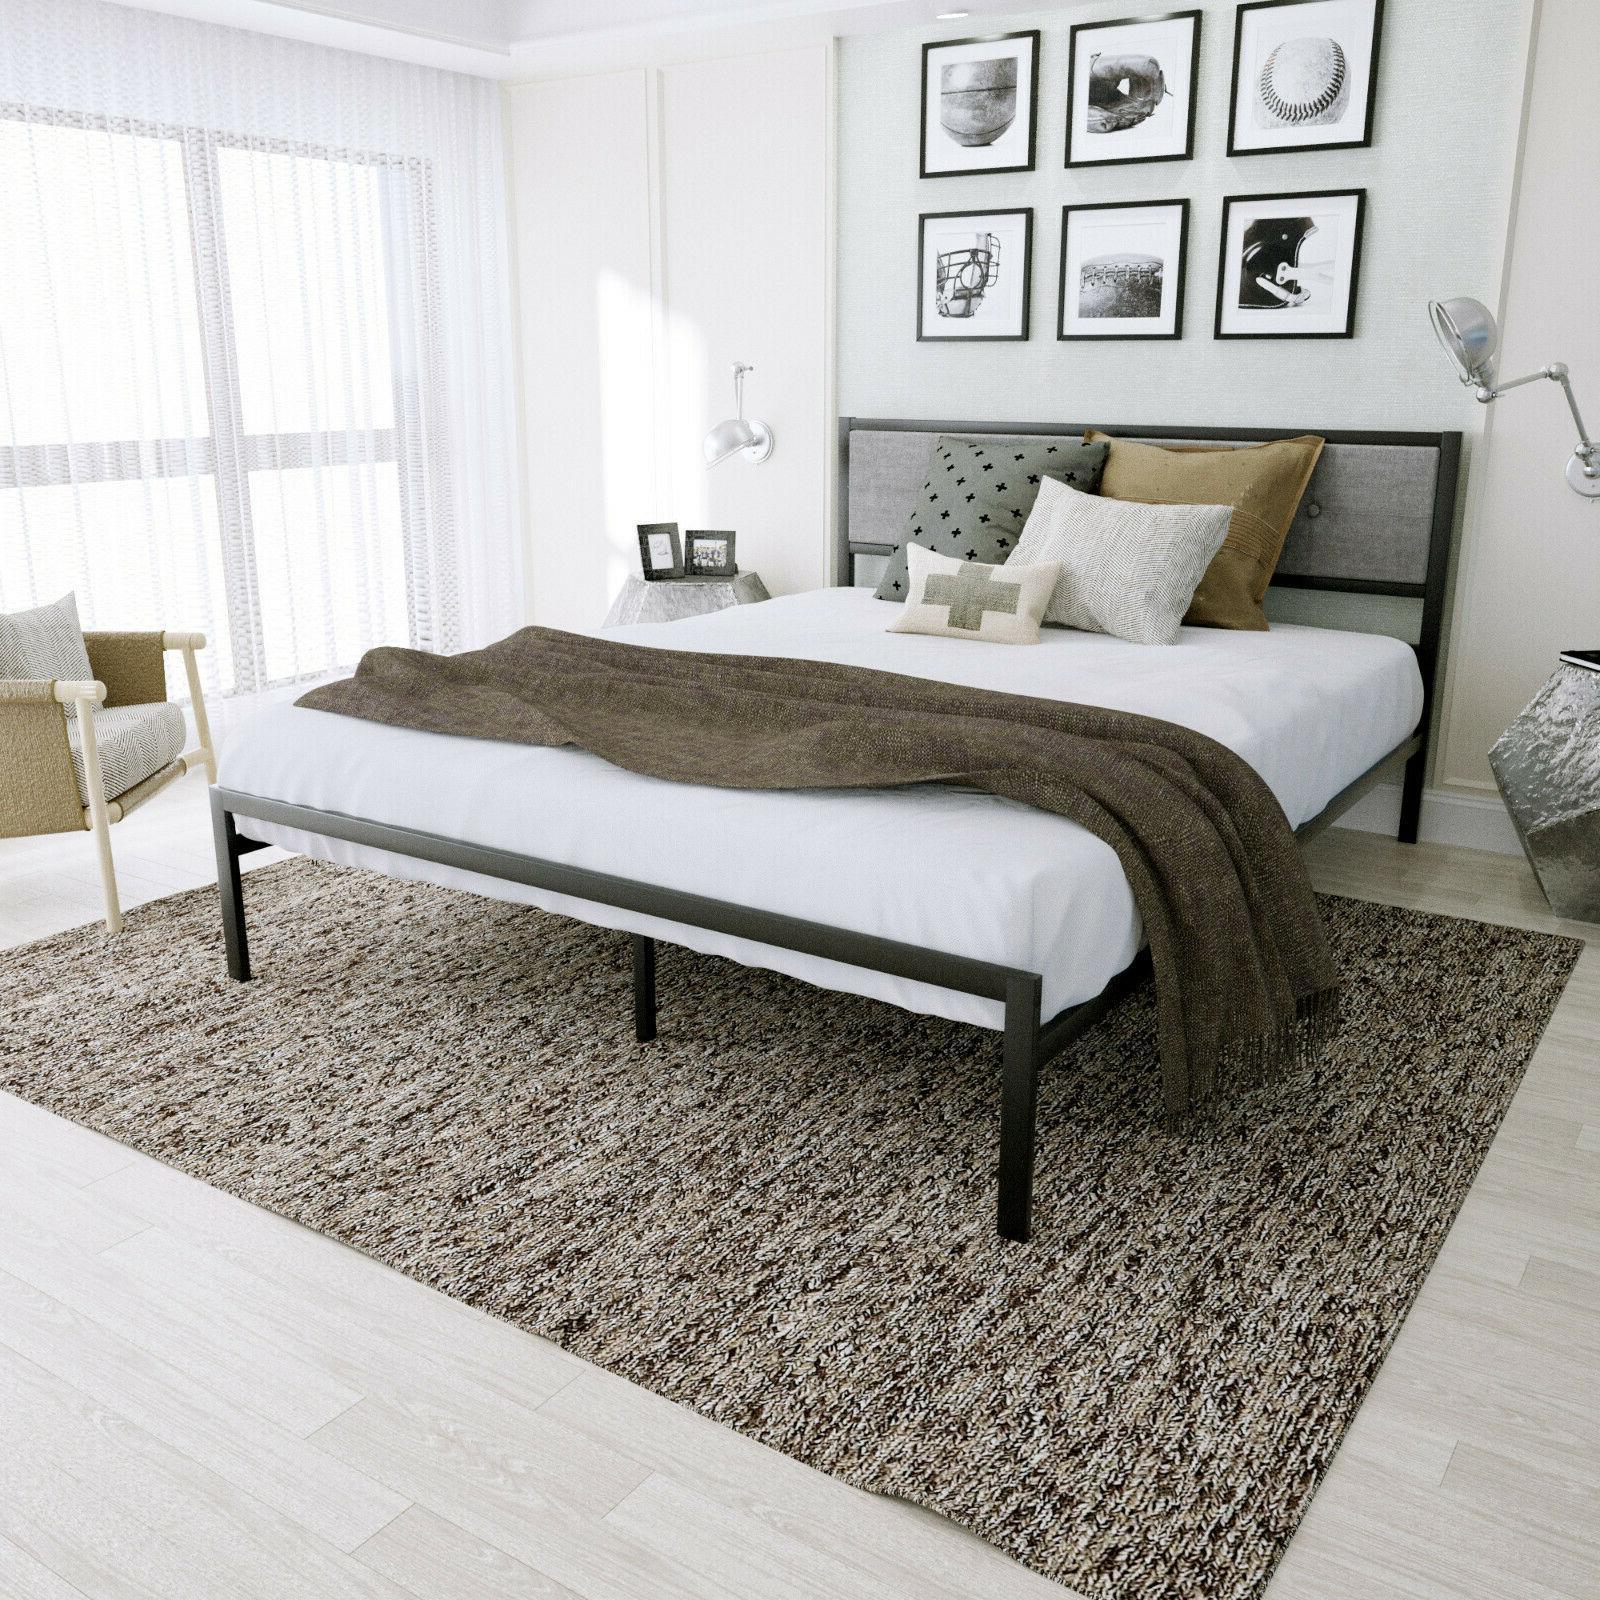 Twin/Full/Queen platform With Modern Upholstery